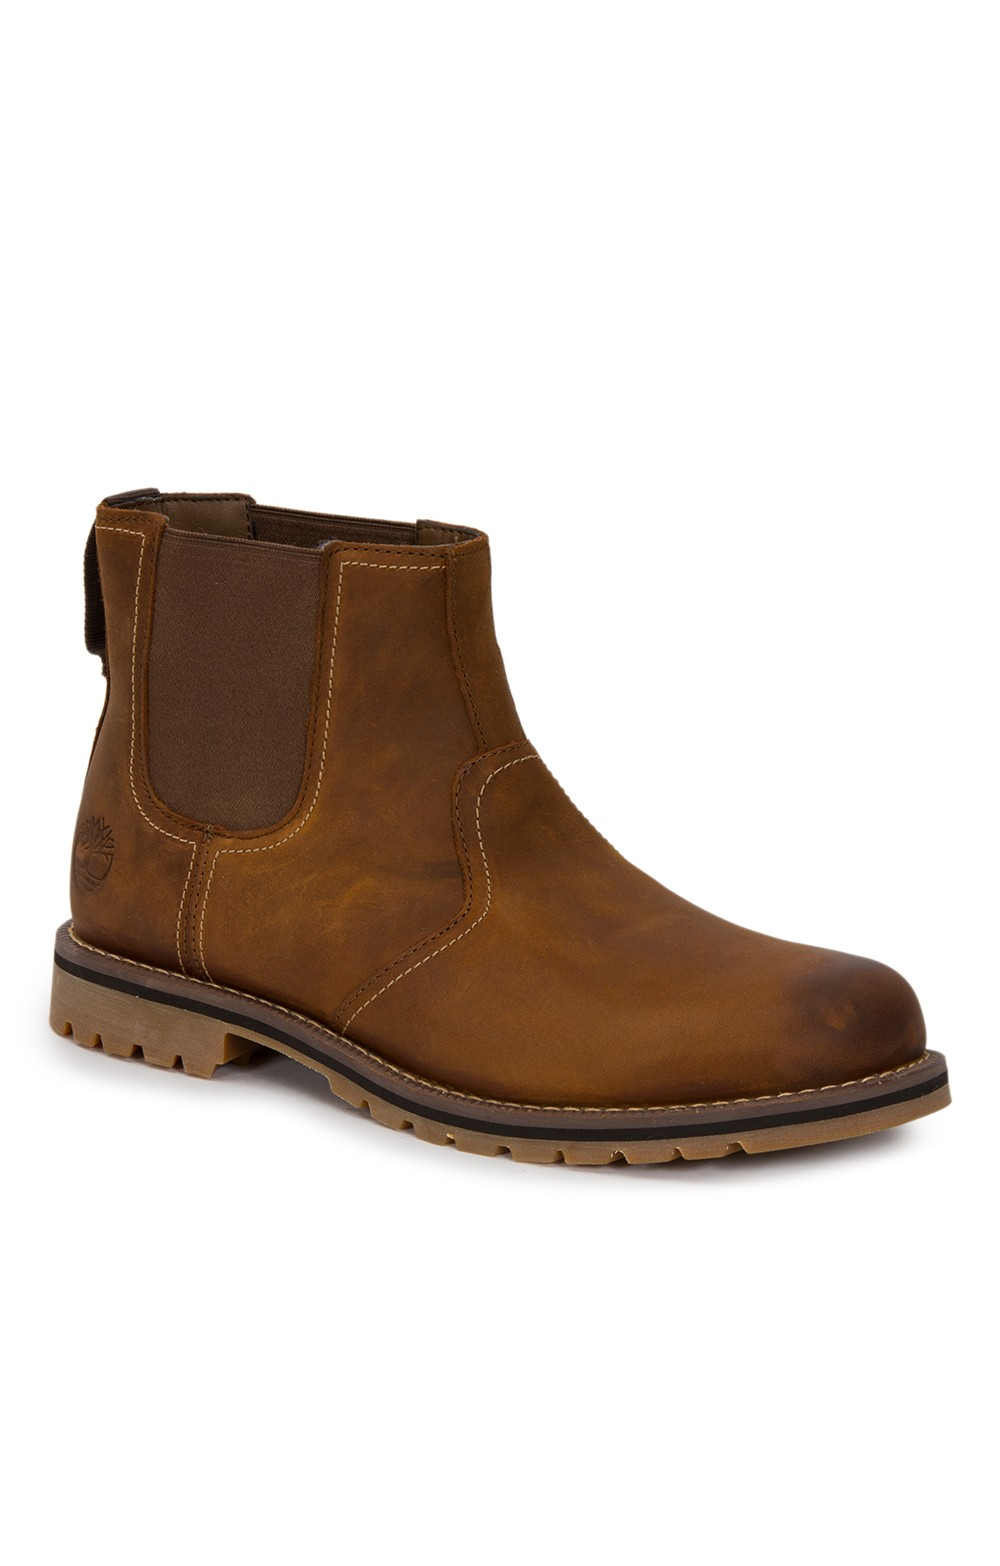 b7926b16d28 Men's Timberland Larchmont Chelsea Boot